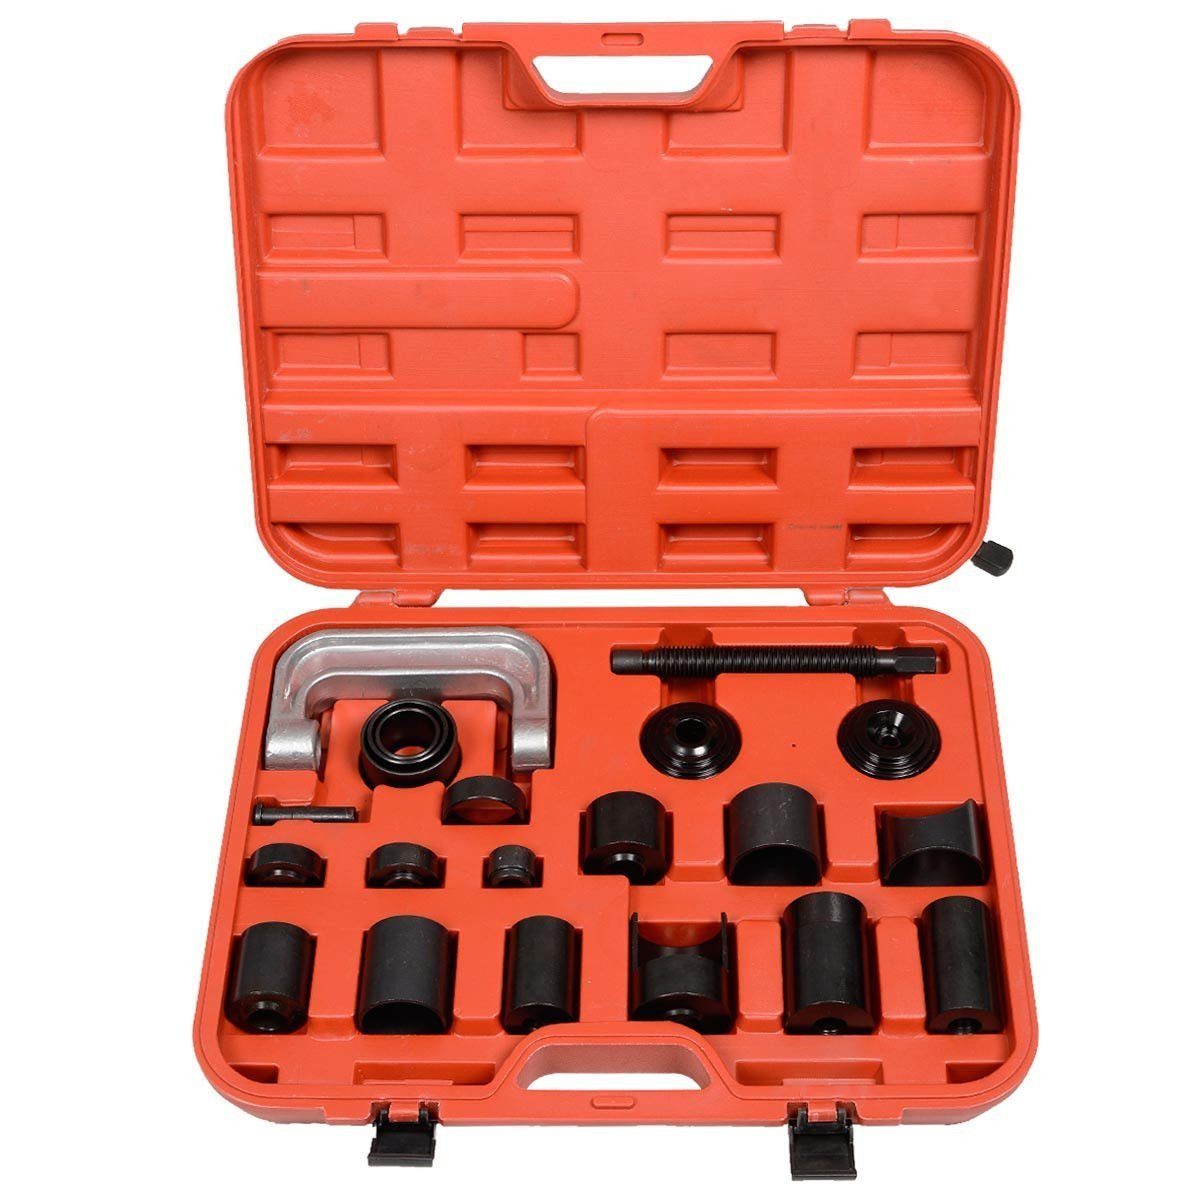 TBvechi 21Pcs Ball Joint Kit Deluxe Auto Repair Ball Joint Removal Tool Installing Master Adapter Ball Joint Service Kit for Removing and Fitting